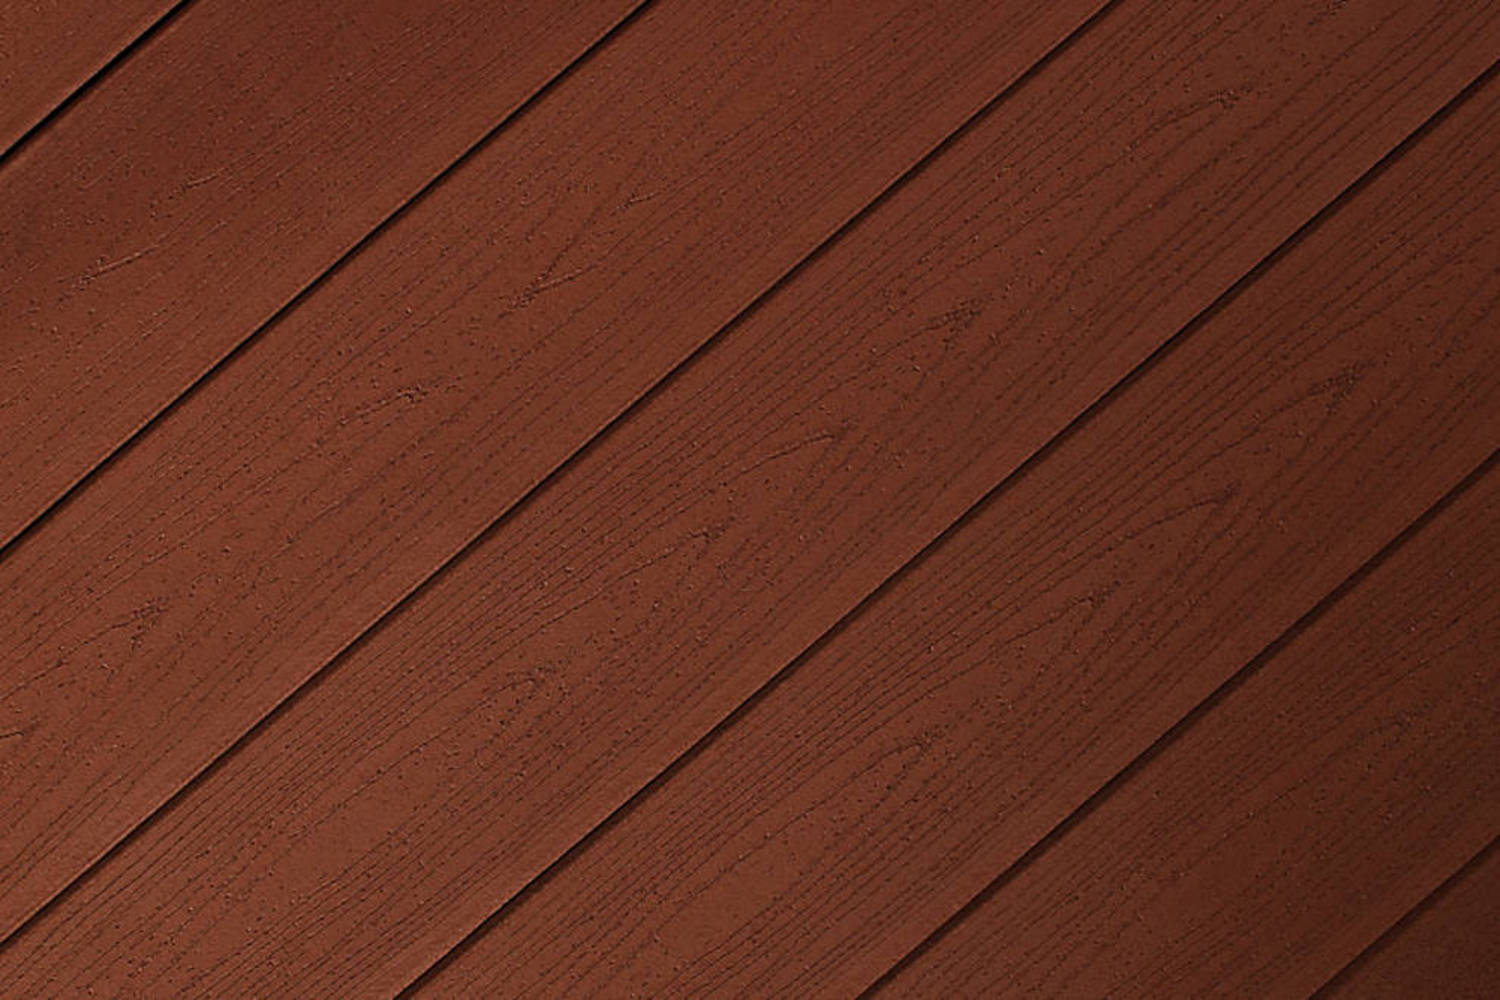 TREX Brown Wood Decking